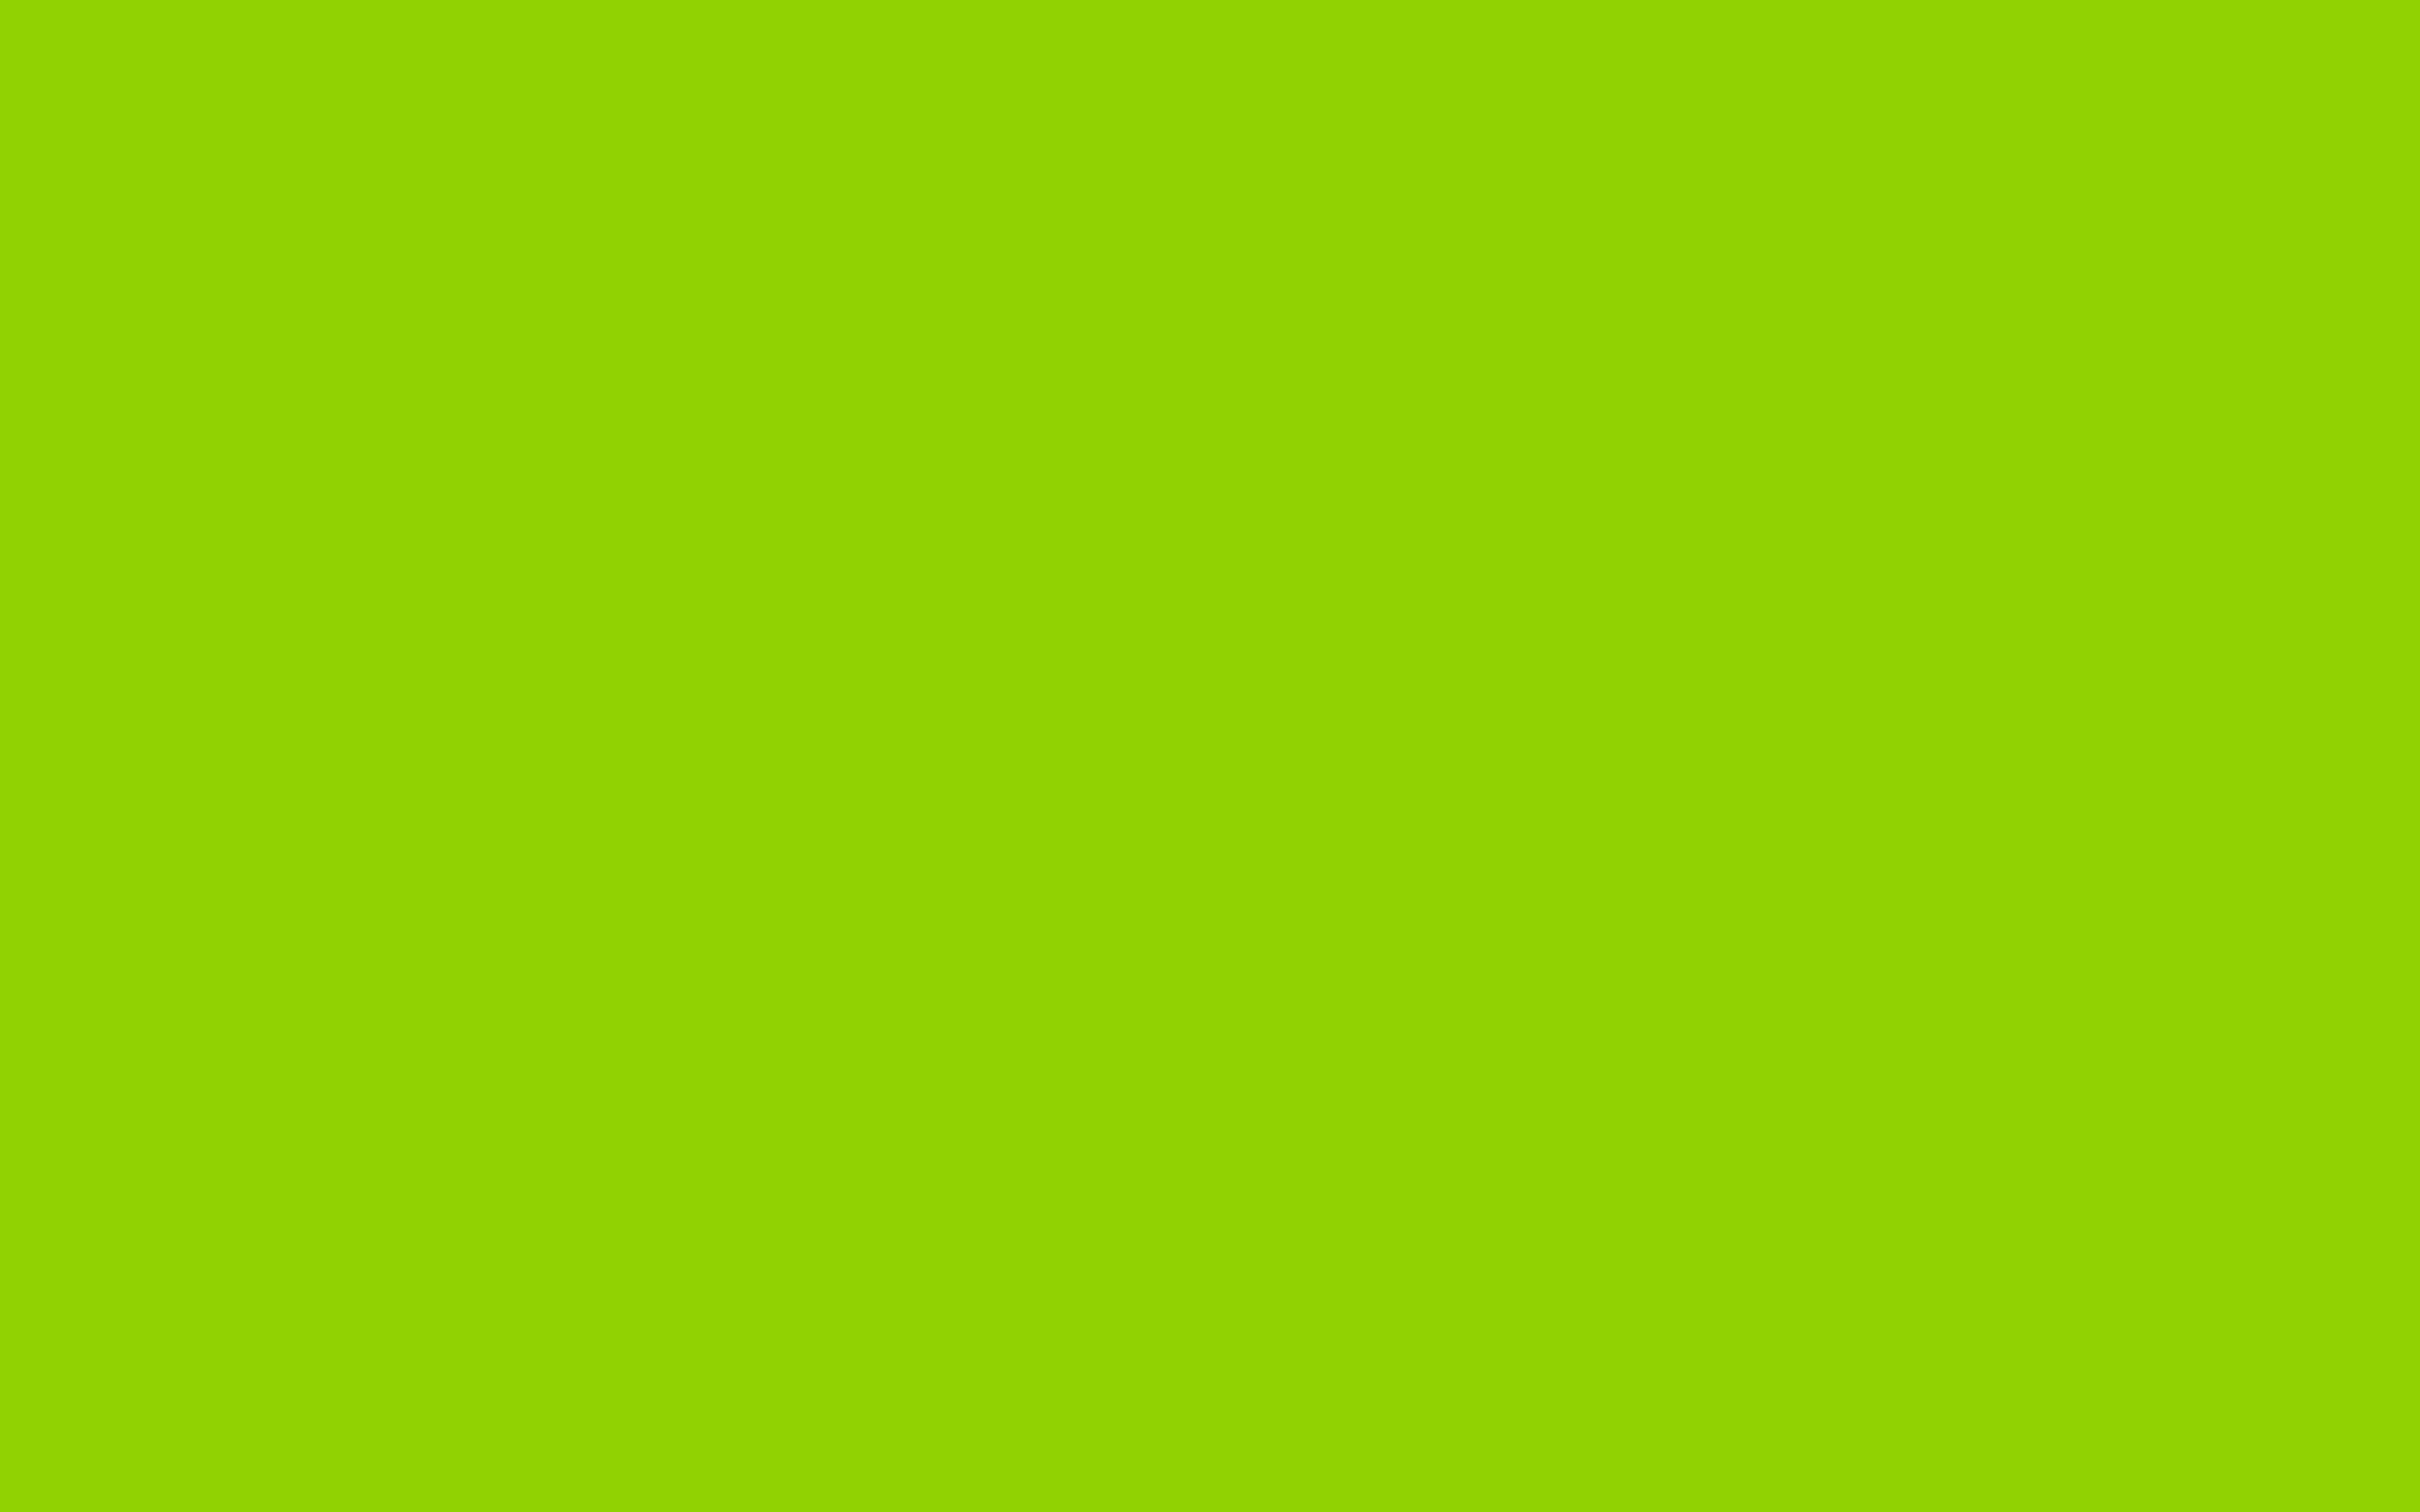 2560x1600 Sheen Green Solid Color Background